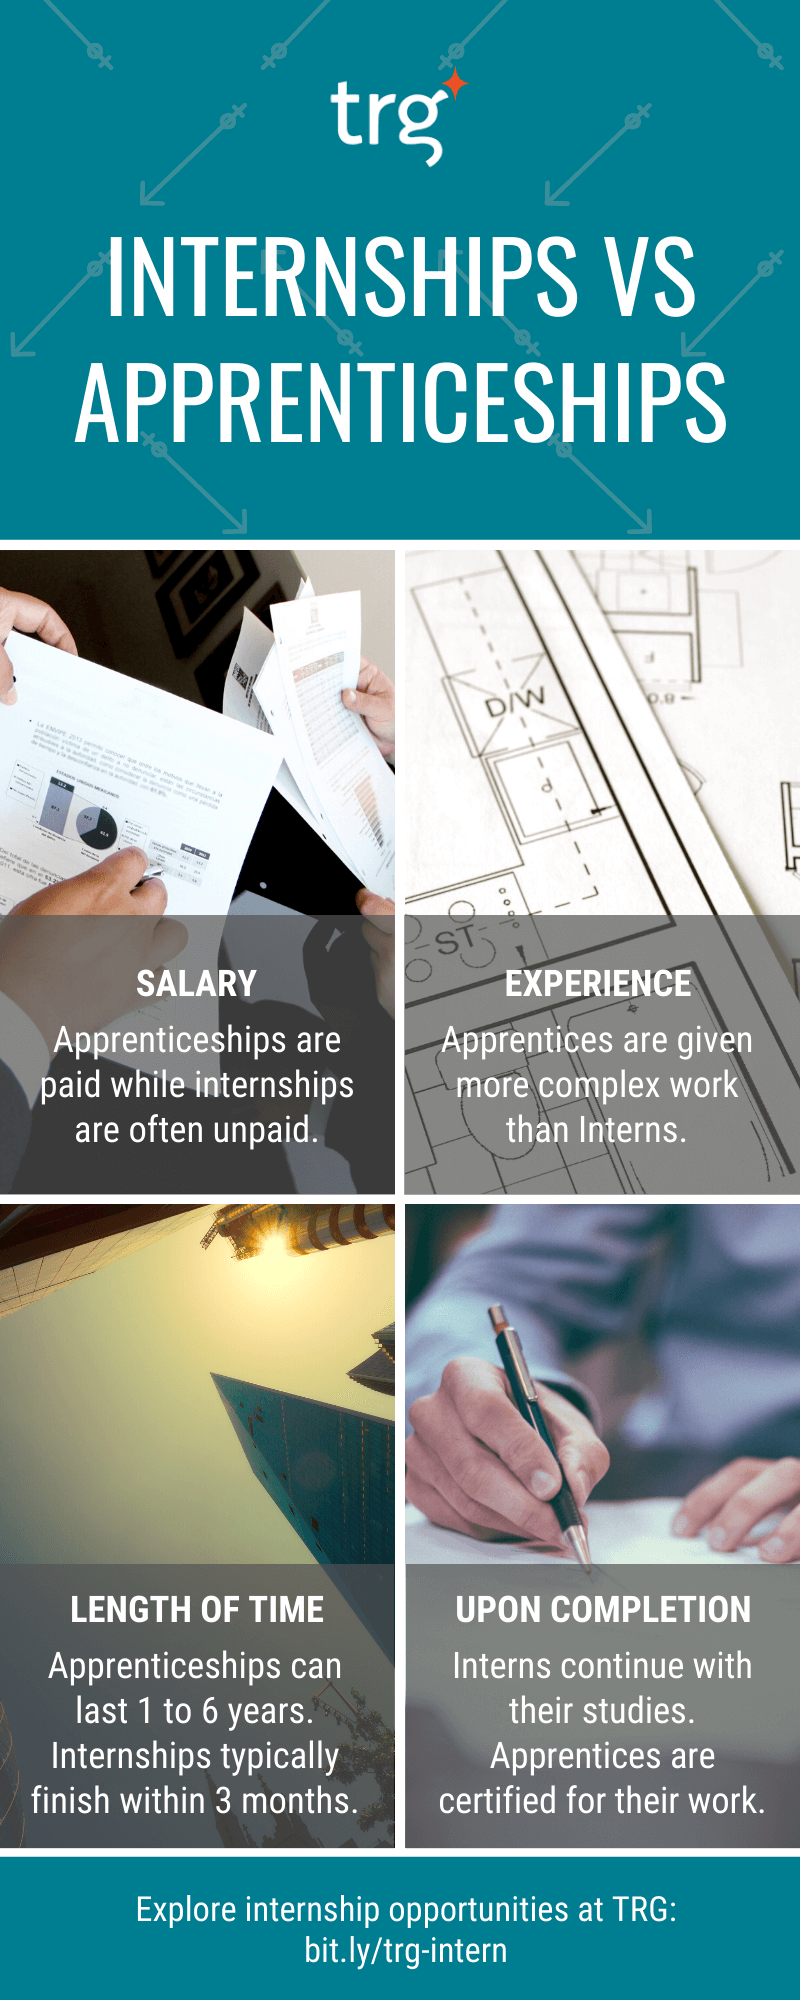 4 differences between internships and apprenticeships